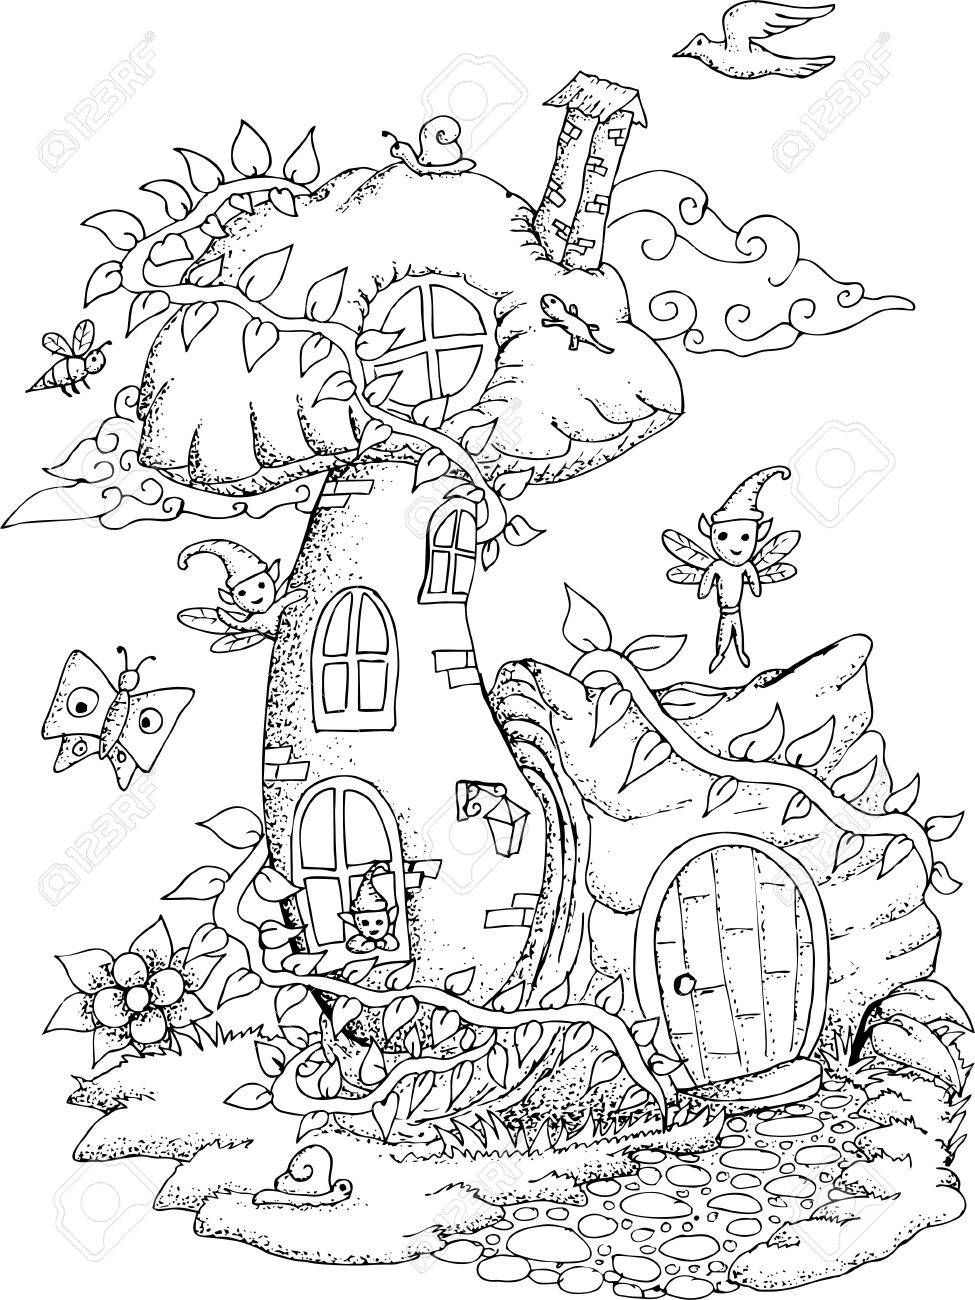 Fairy house parts clipart black and white picture free Stock Vector | houses and castles | Fairy coloring pages, House ... picture free